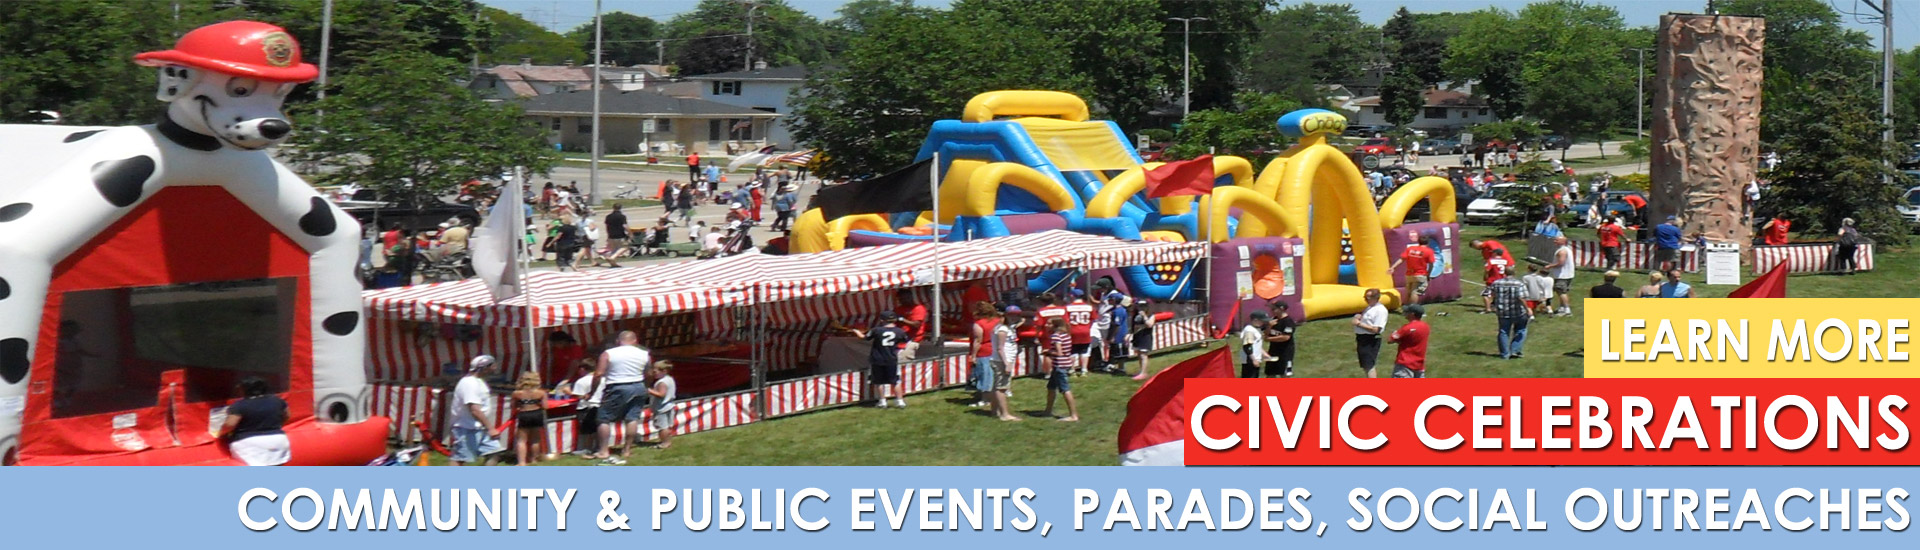 Civic Celebrations & Community Events Ideas